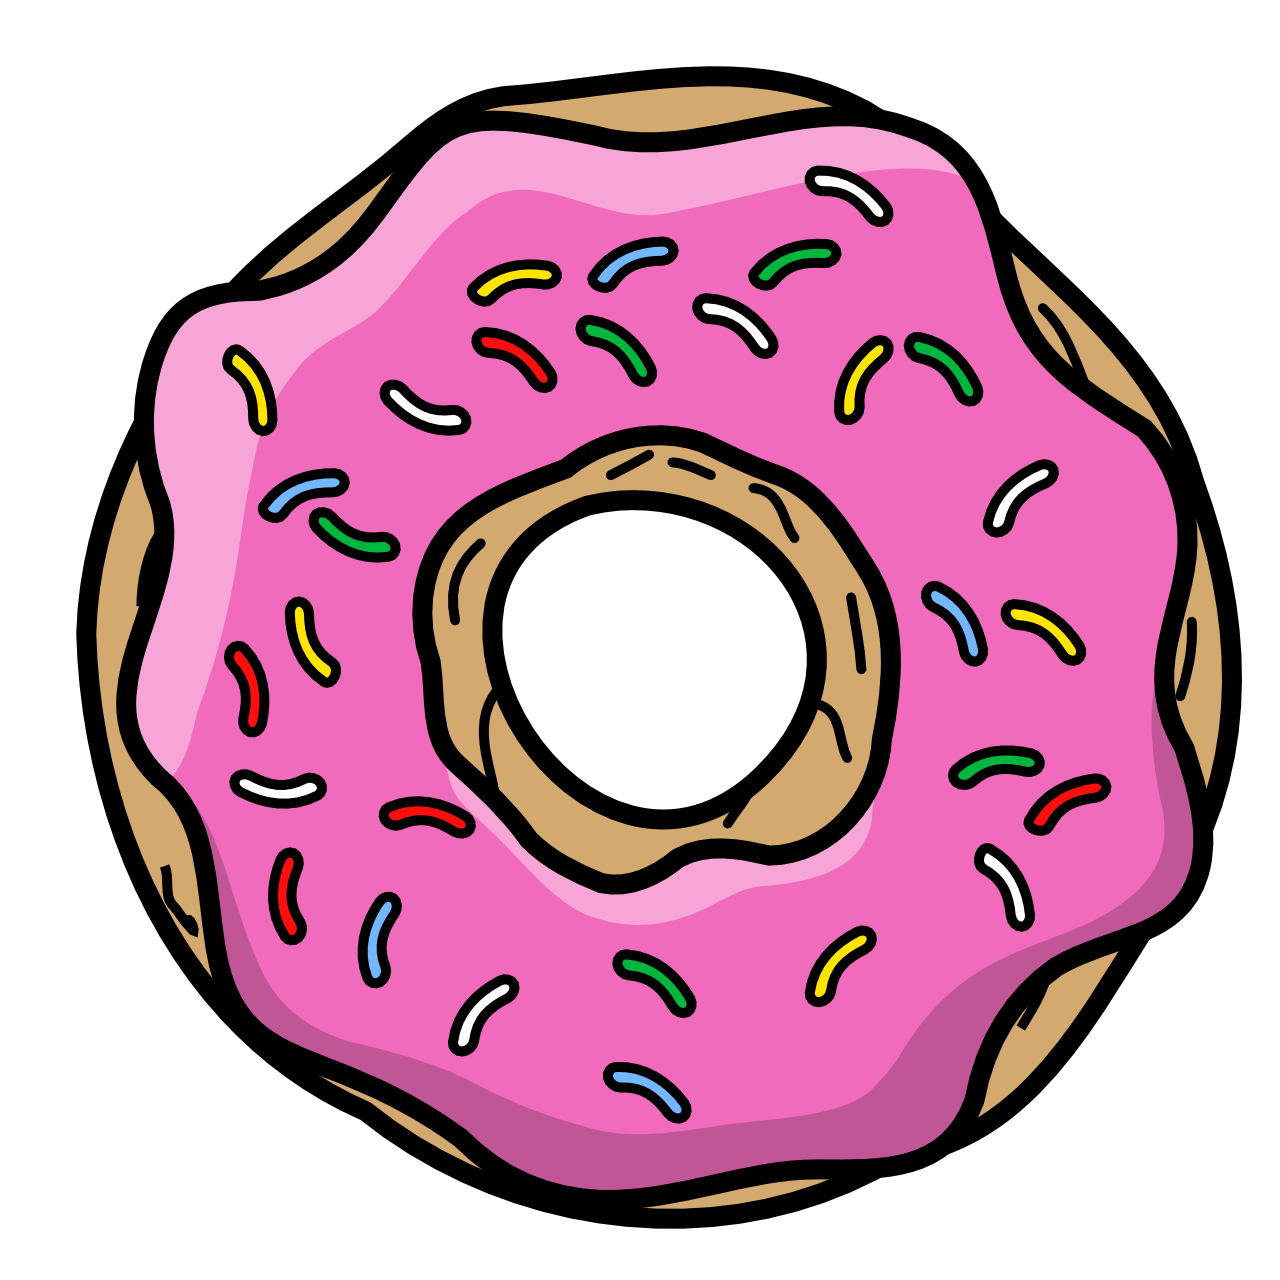 Donuts frosting icing t. Donut clipart frosted